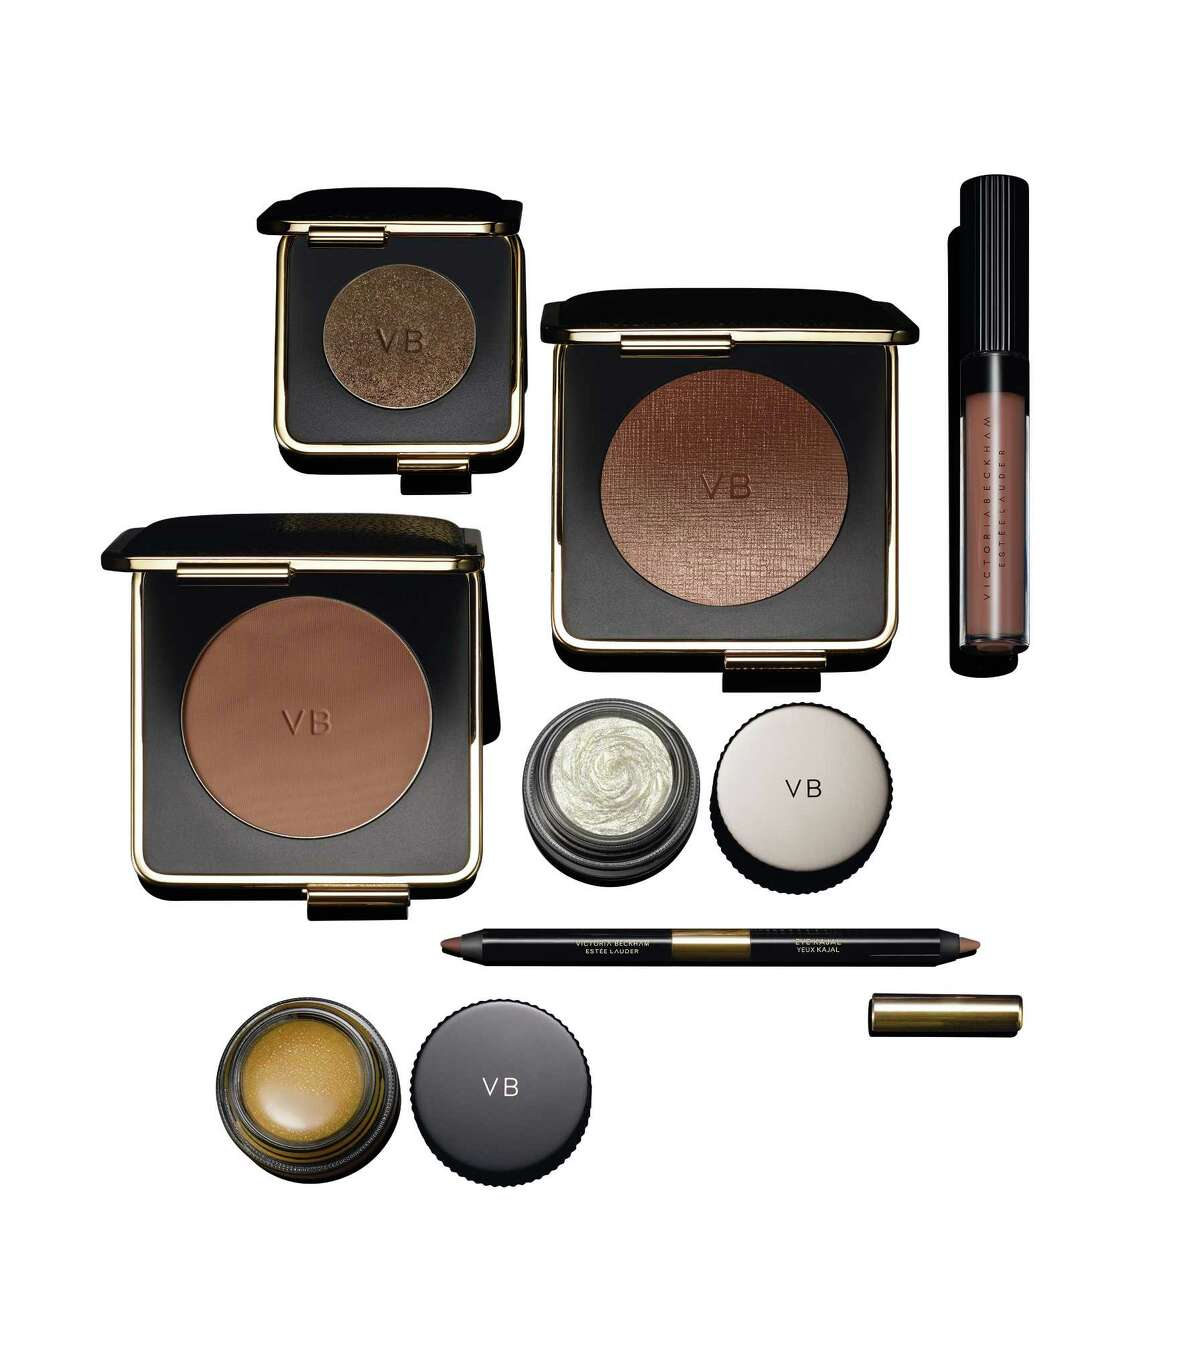 Victoria Beckham x Estee Lauder is a fall/winter 2017 collection of makeup shades by the former Spice Girl. The collection builds on the initial collaboration with Estee Lauder by including setting powder, lip glosses, cream blush, mascara, shadow palettes, both liquid and pencil eyeliners, matte lipsticks, and a multi-purpose gloss